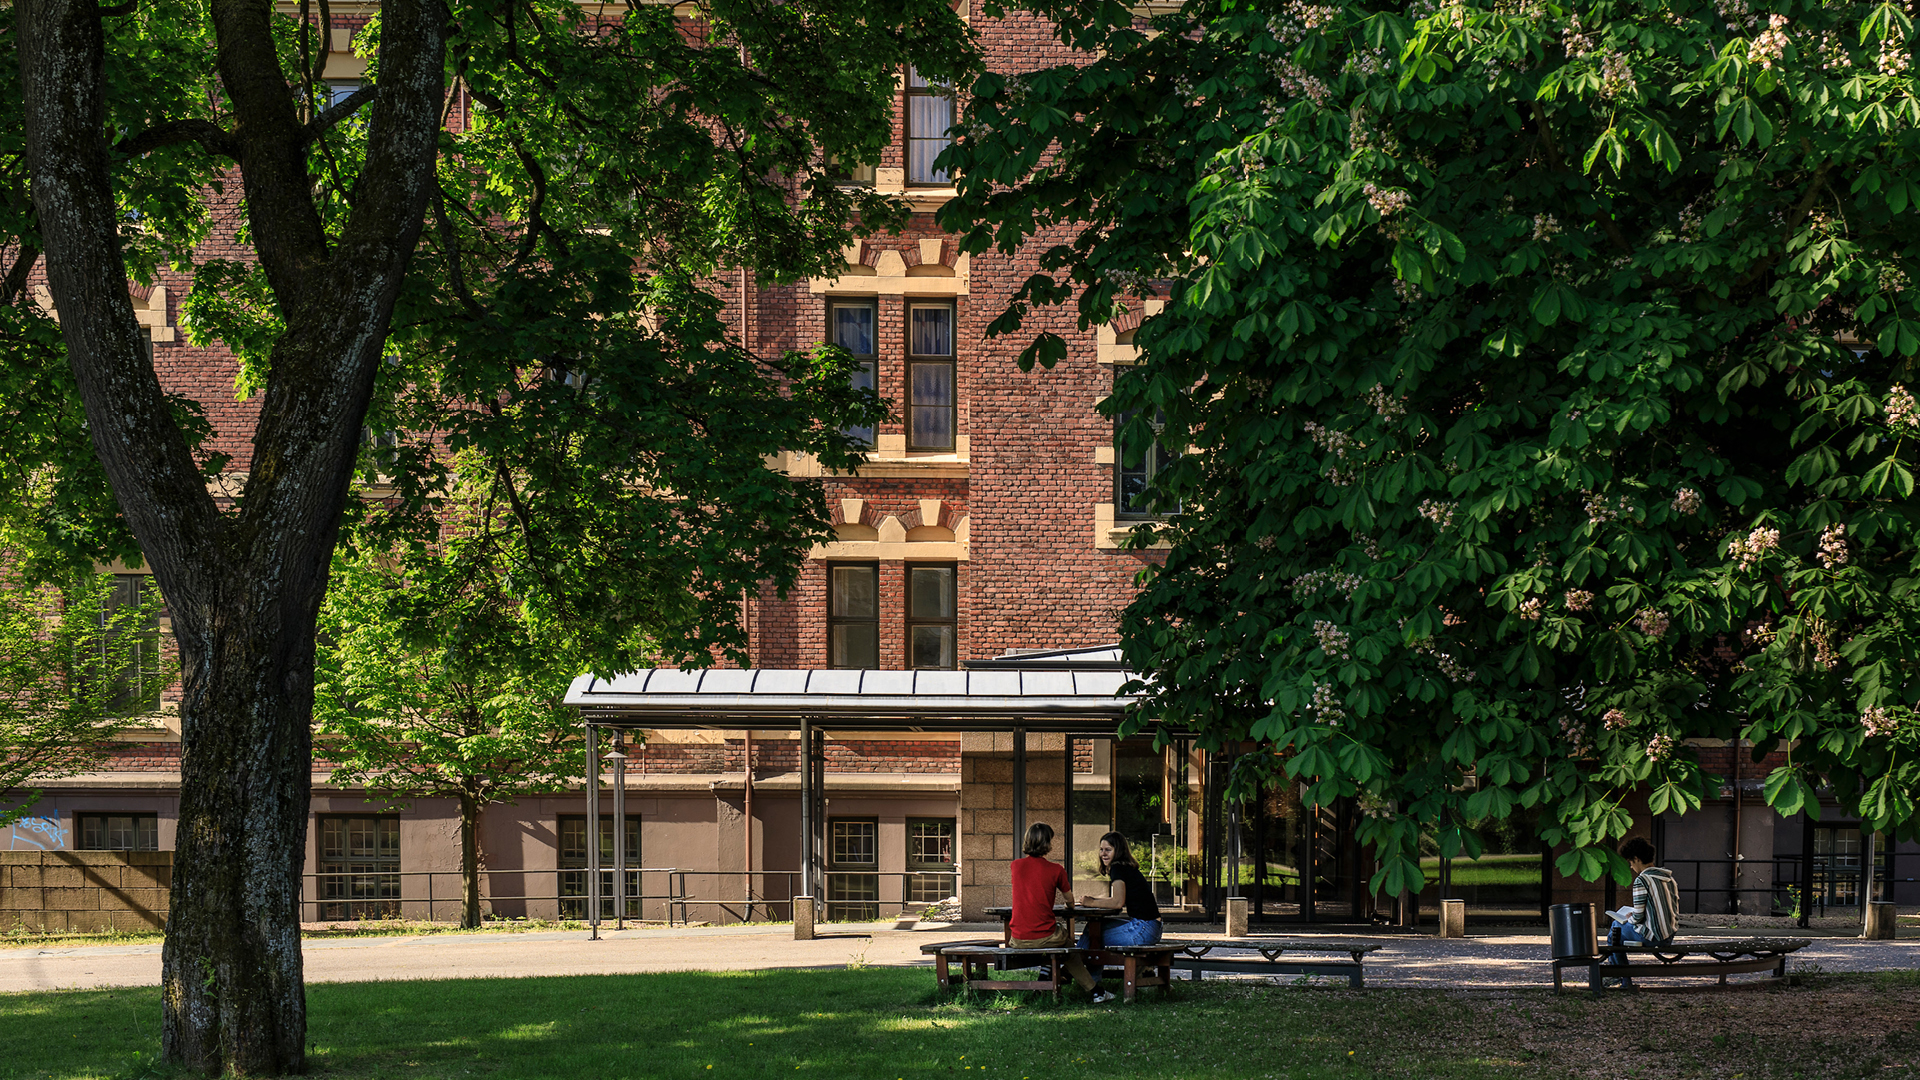 Oslo Biennale – From private to public